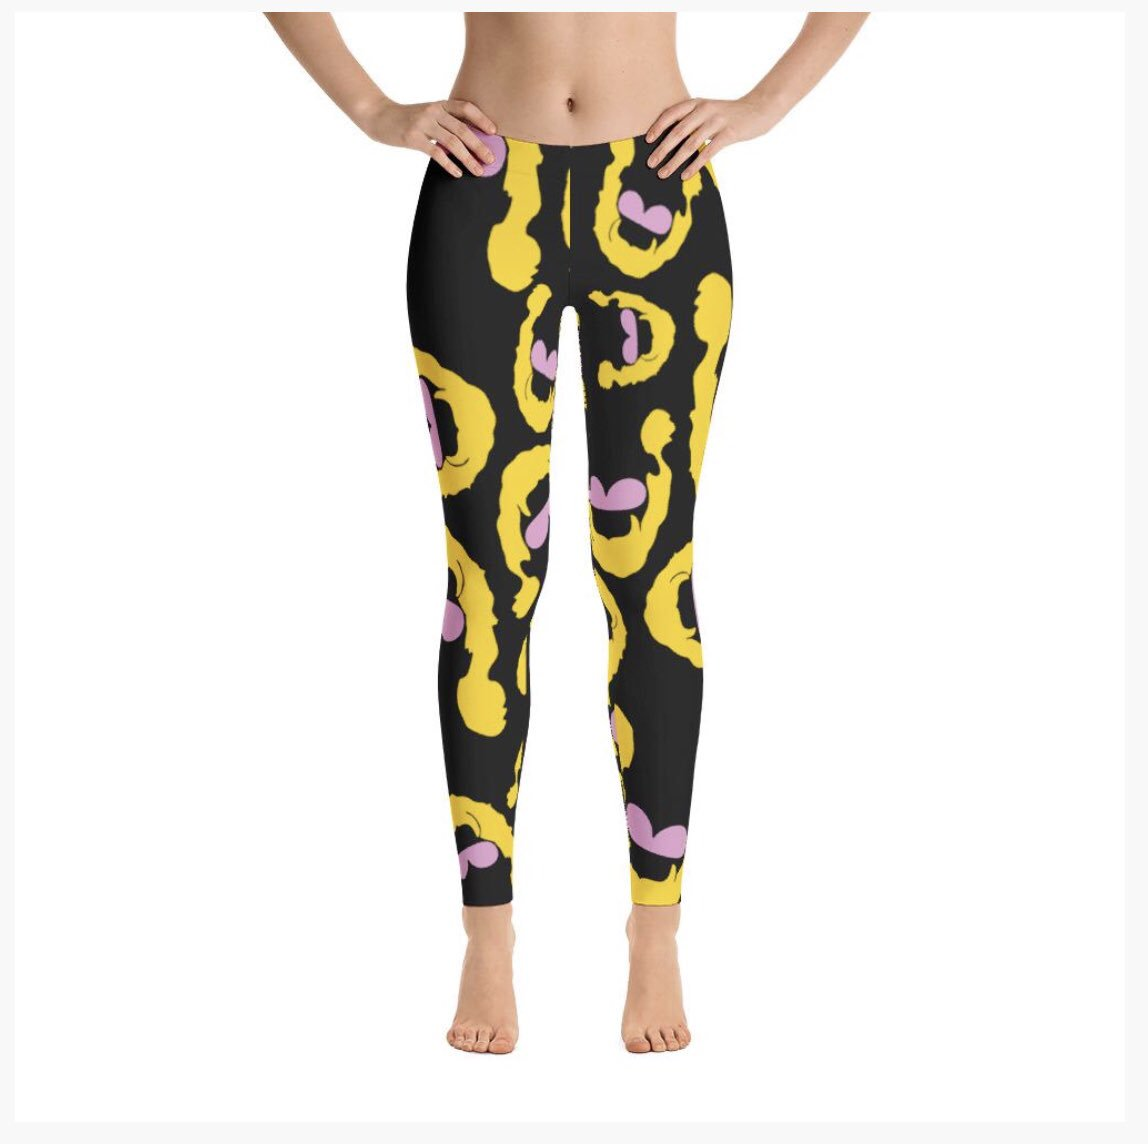 New Leggings Added To RicFlairShop.com! Check Them Out! WOOOOO! #flairface